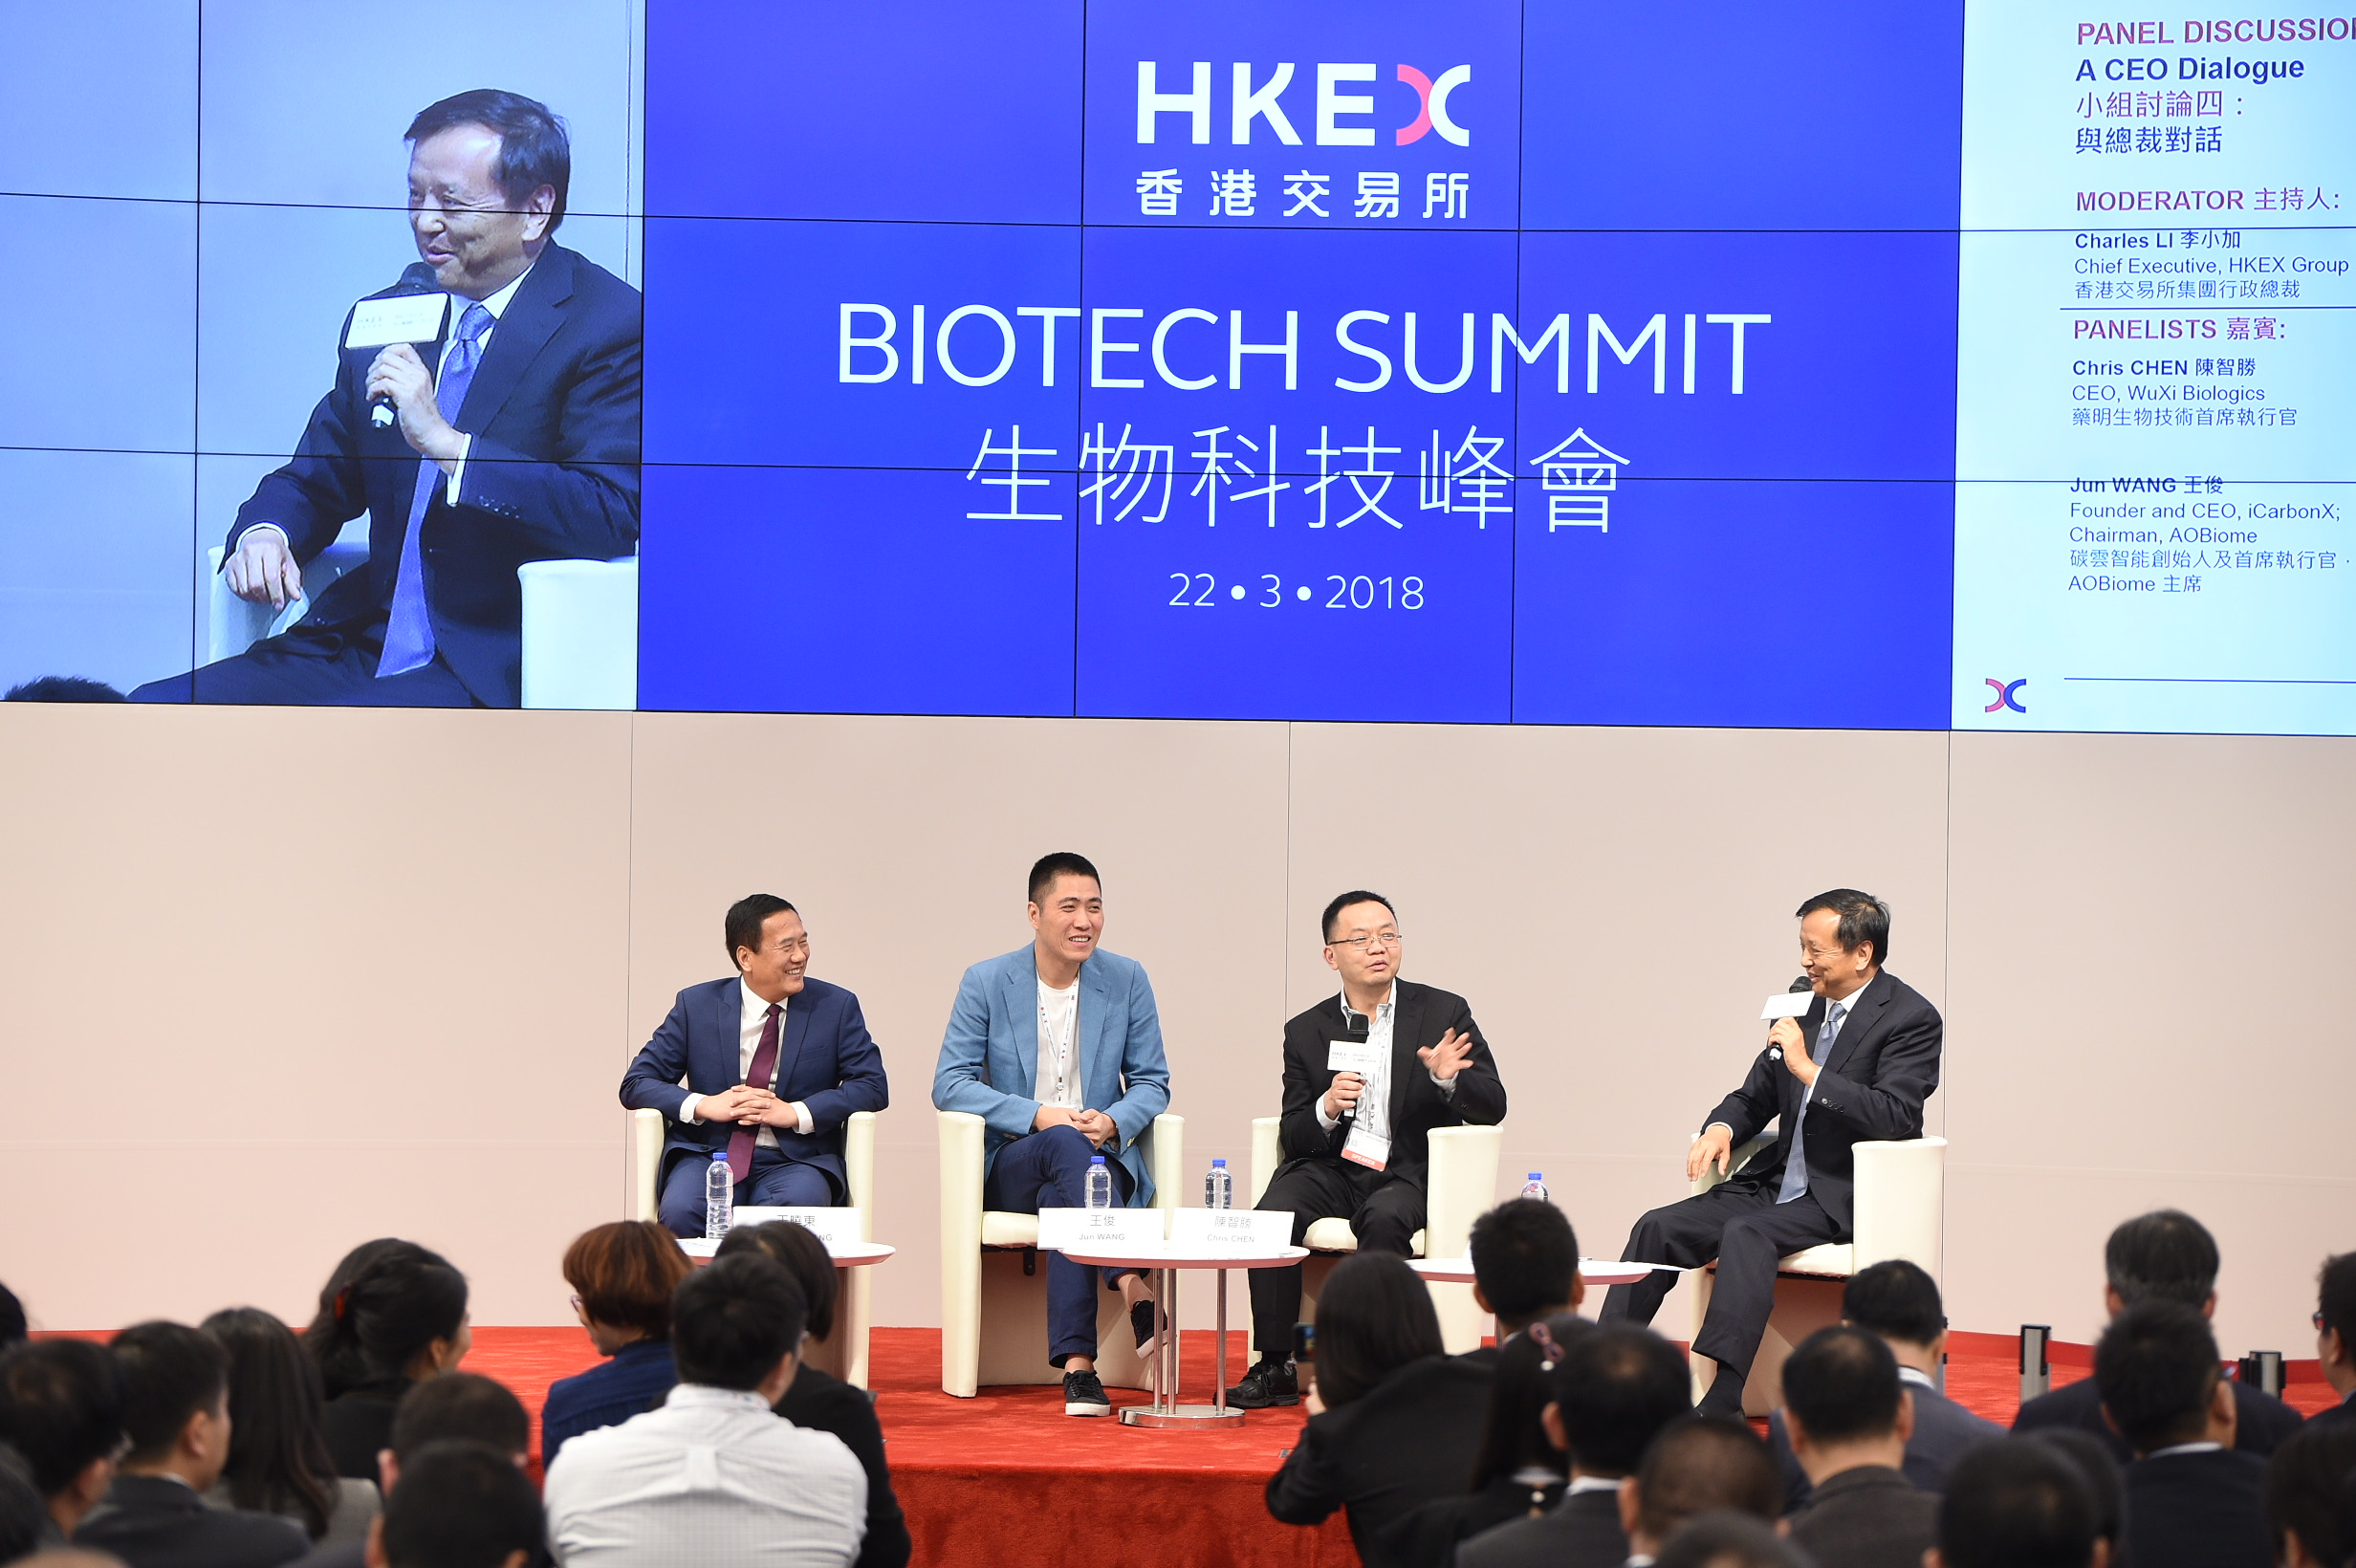 HKEX Chief Executive Charles Li hosted a panel discussion with biotech CEOs at the HKEX Biotech Summit 2018.